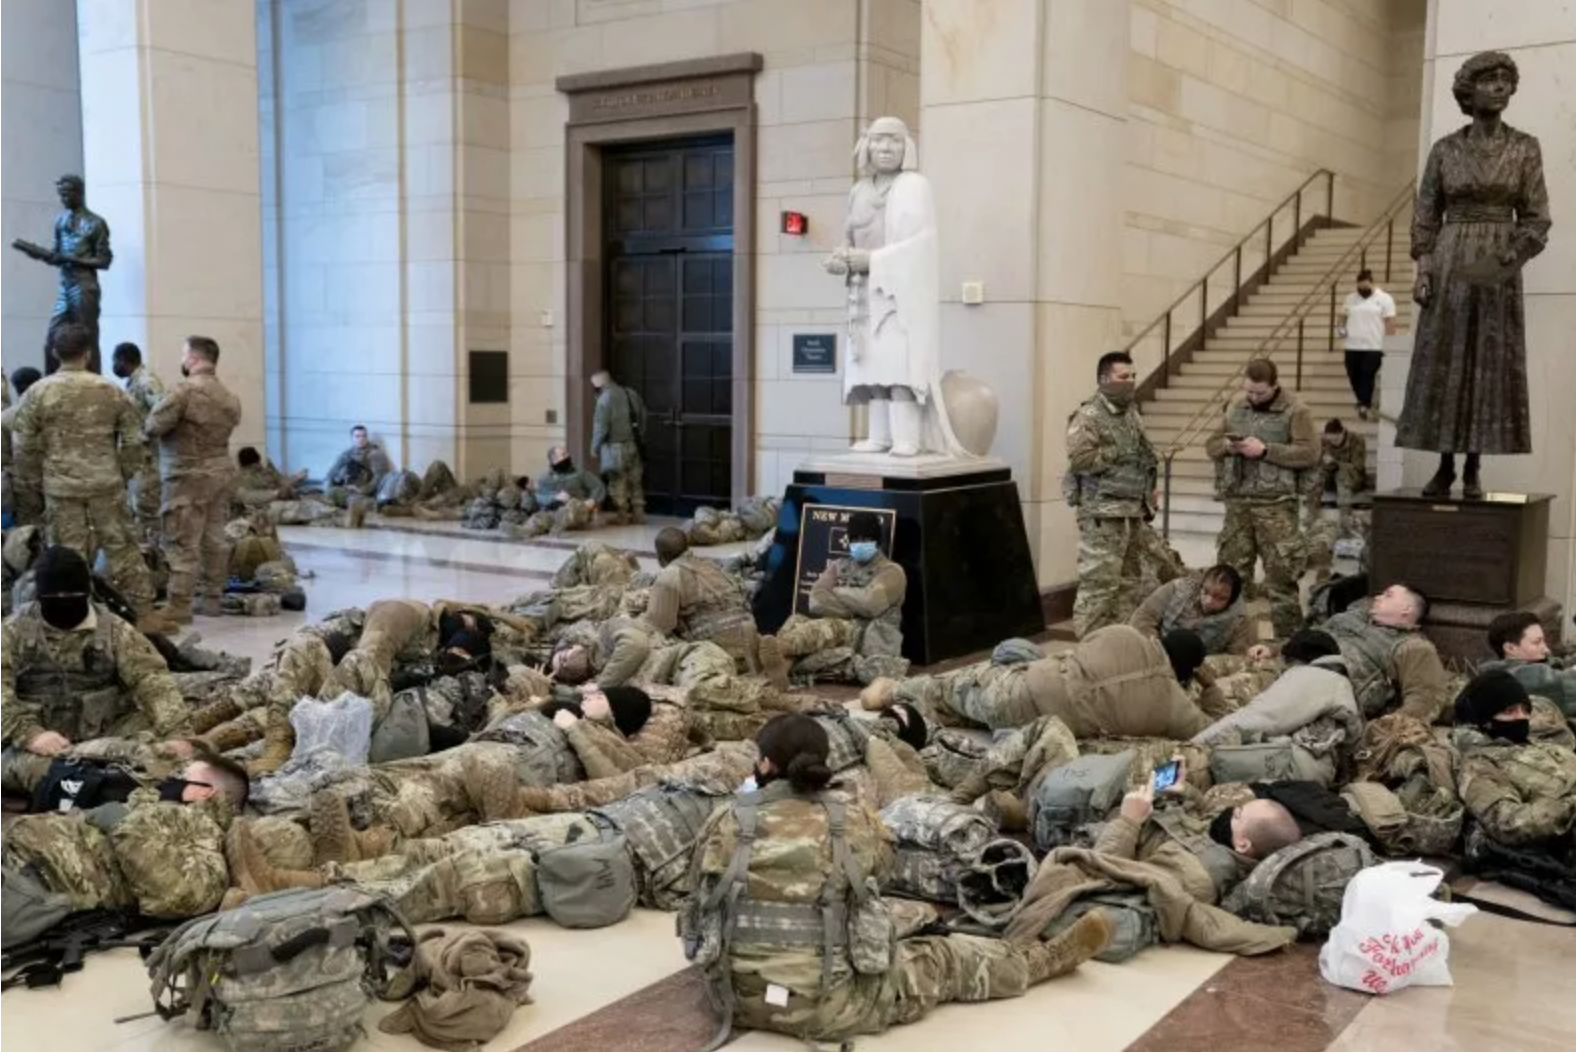 With no payback over Capital riot costs, US National Guard forced to cancel trainings